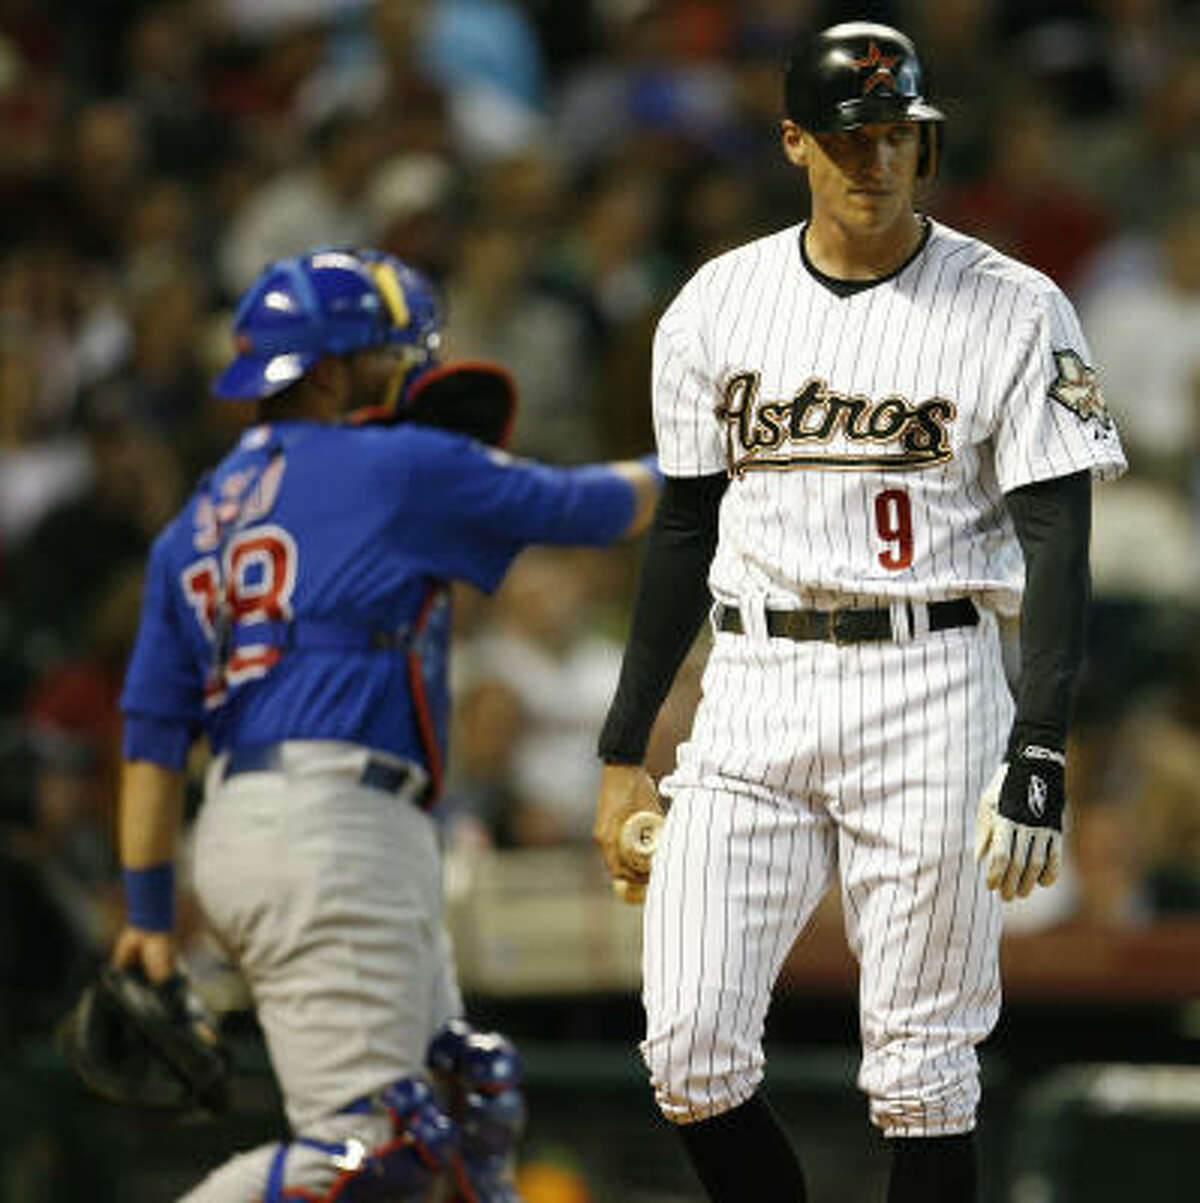 Hunter Pence reacts as he strikes out.